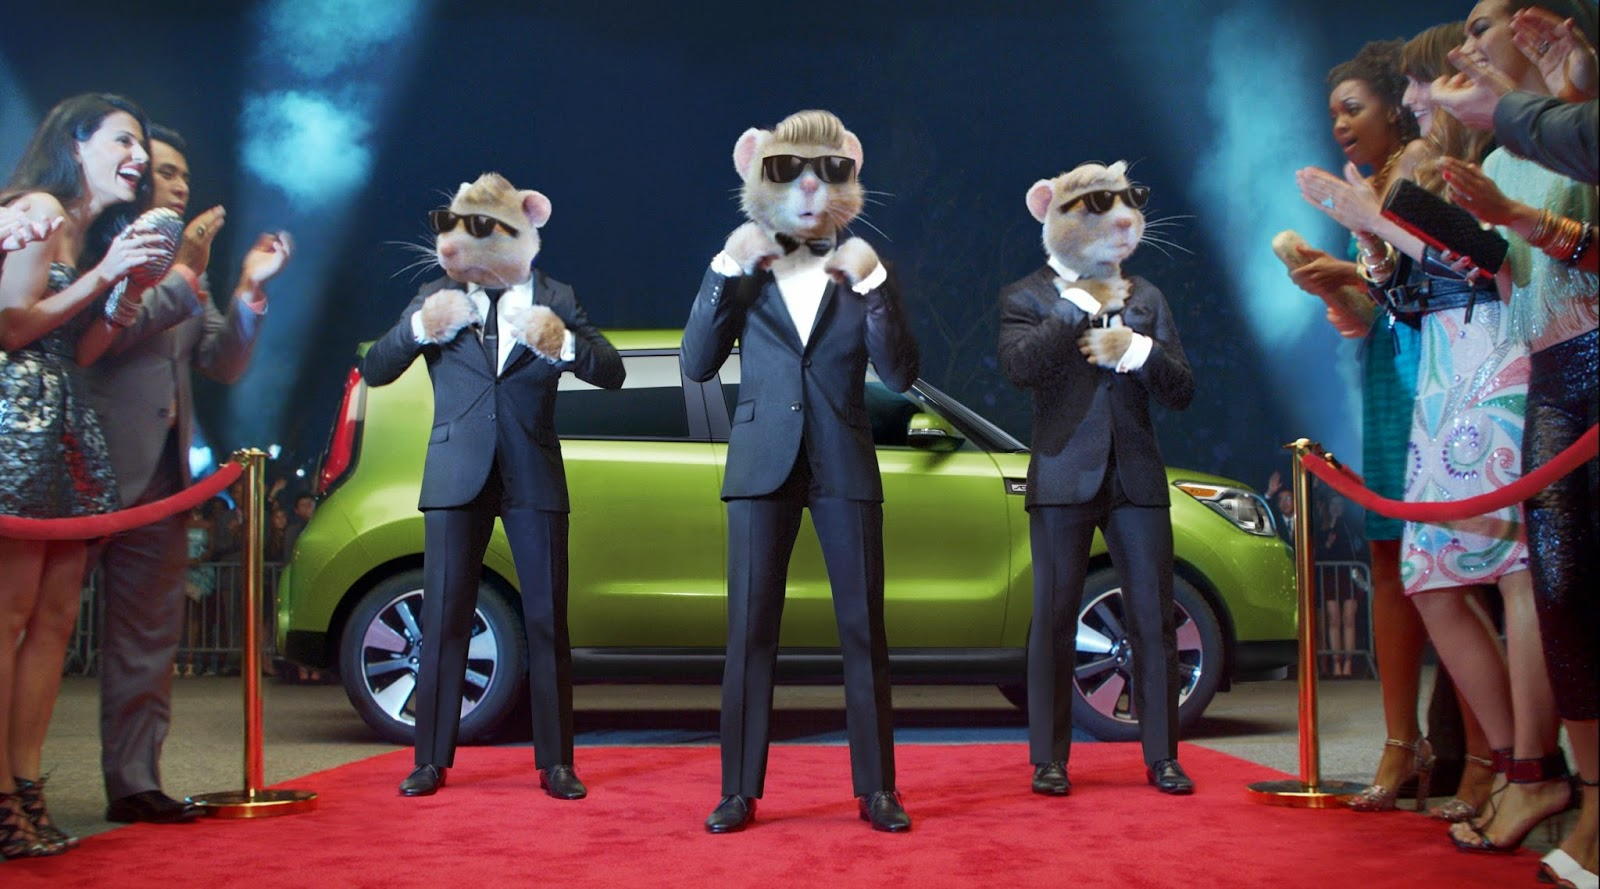 Kia Soul Commercial Song The Kia Soul Hamster Commercials A New World On Wheels